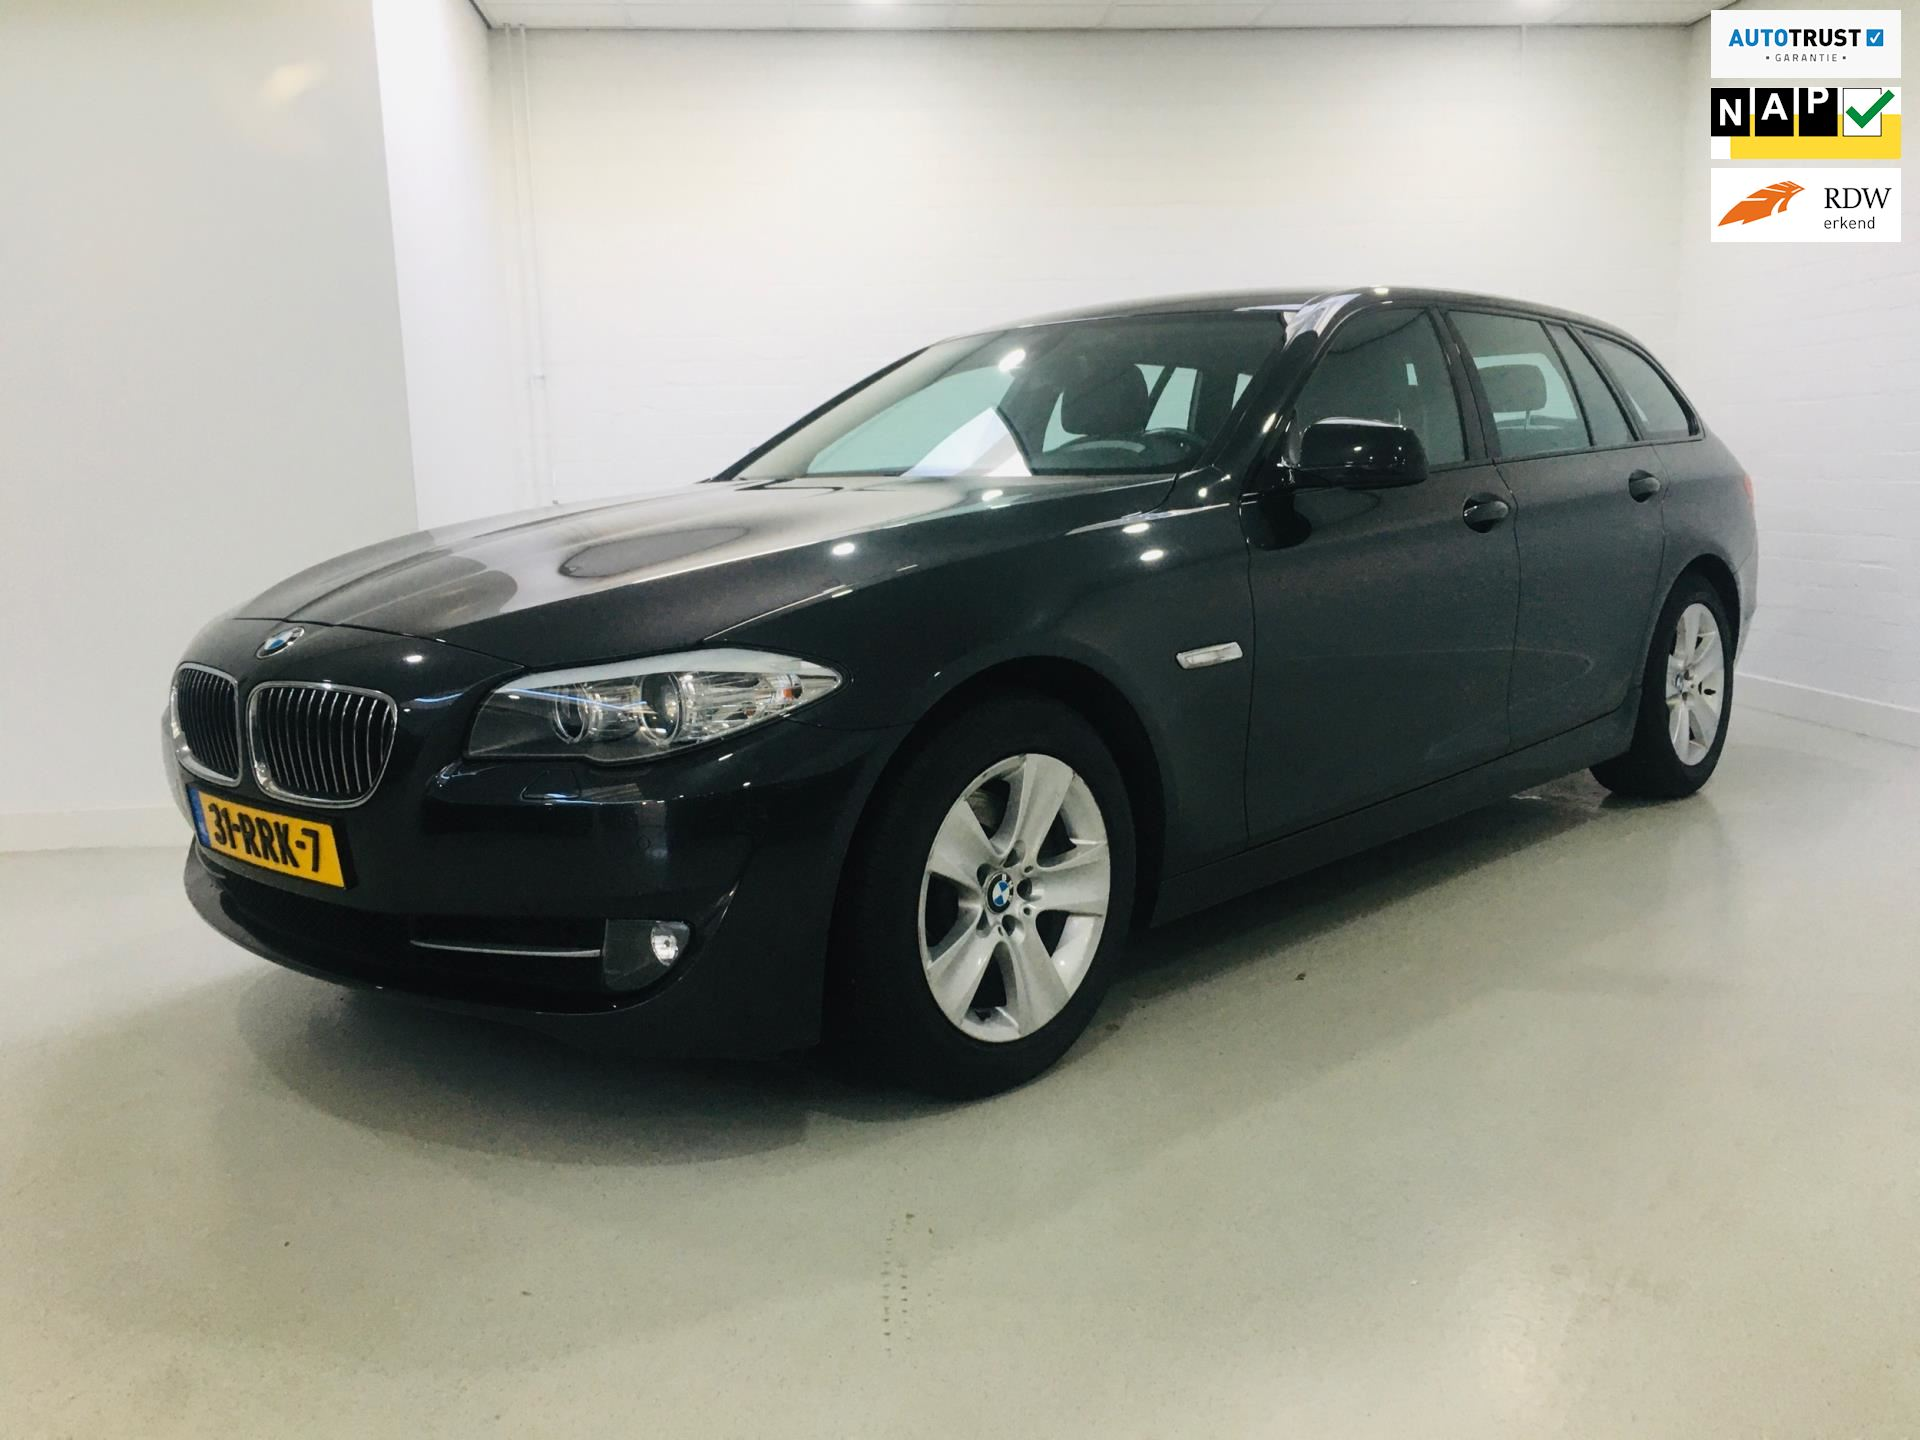 BMW 5-serie Touring occasion - Heijsteeg Auto's